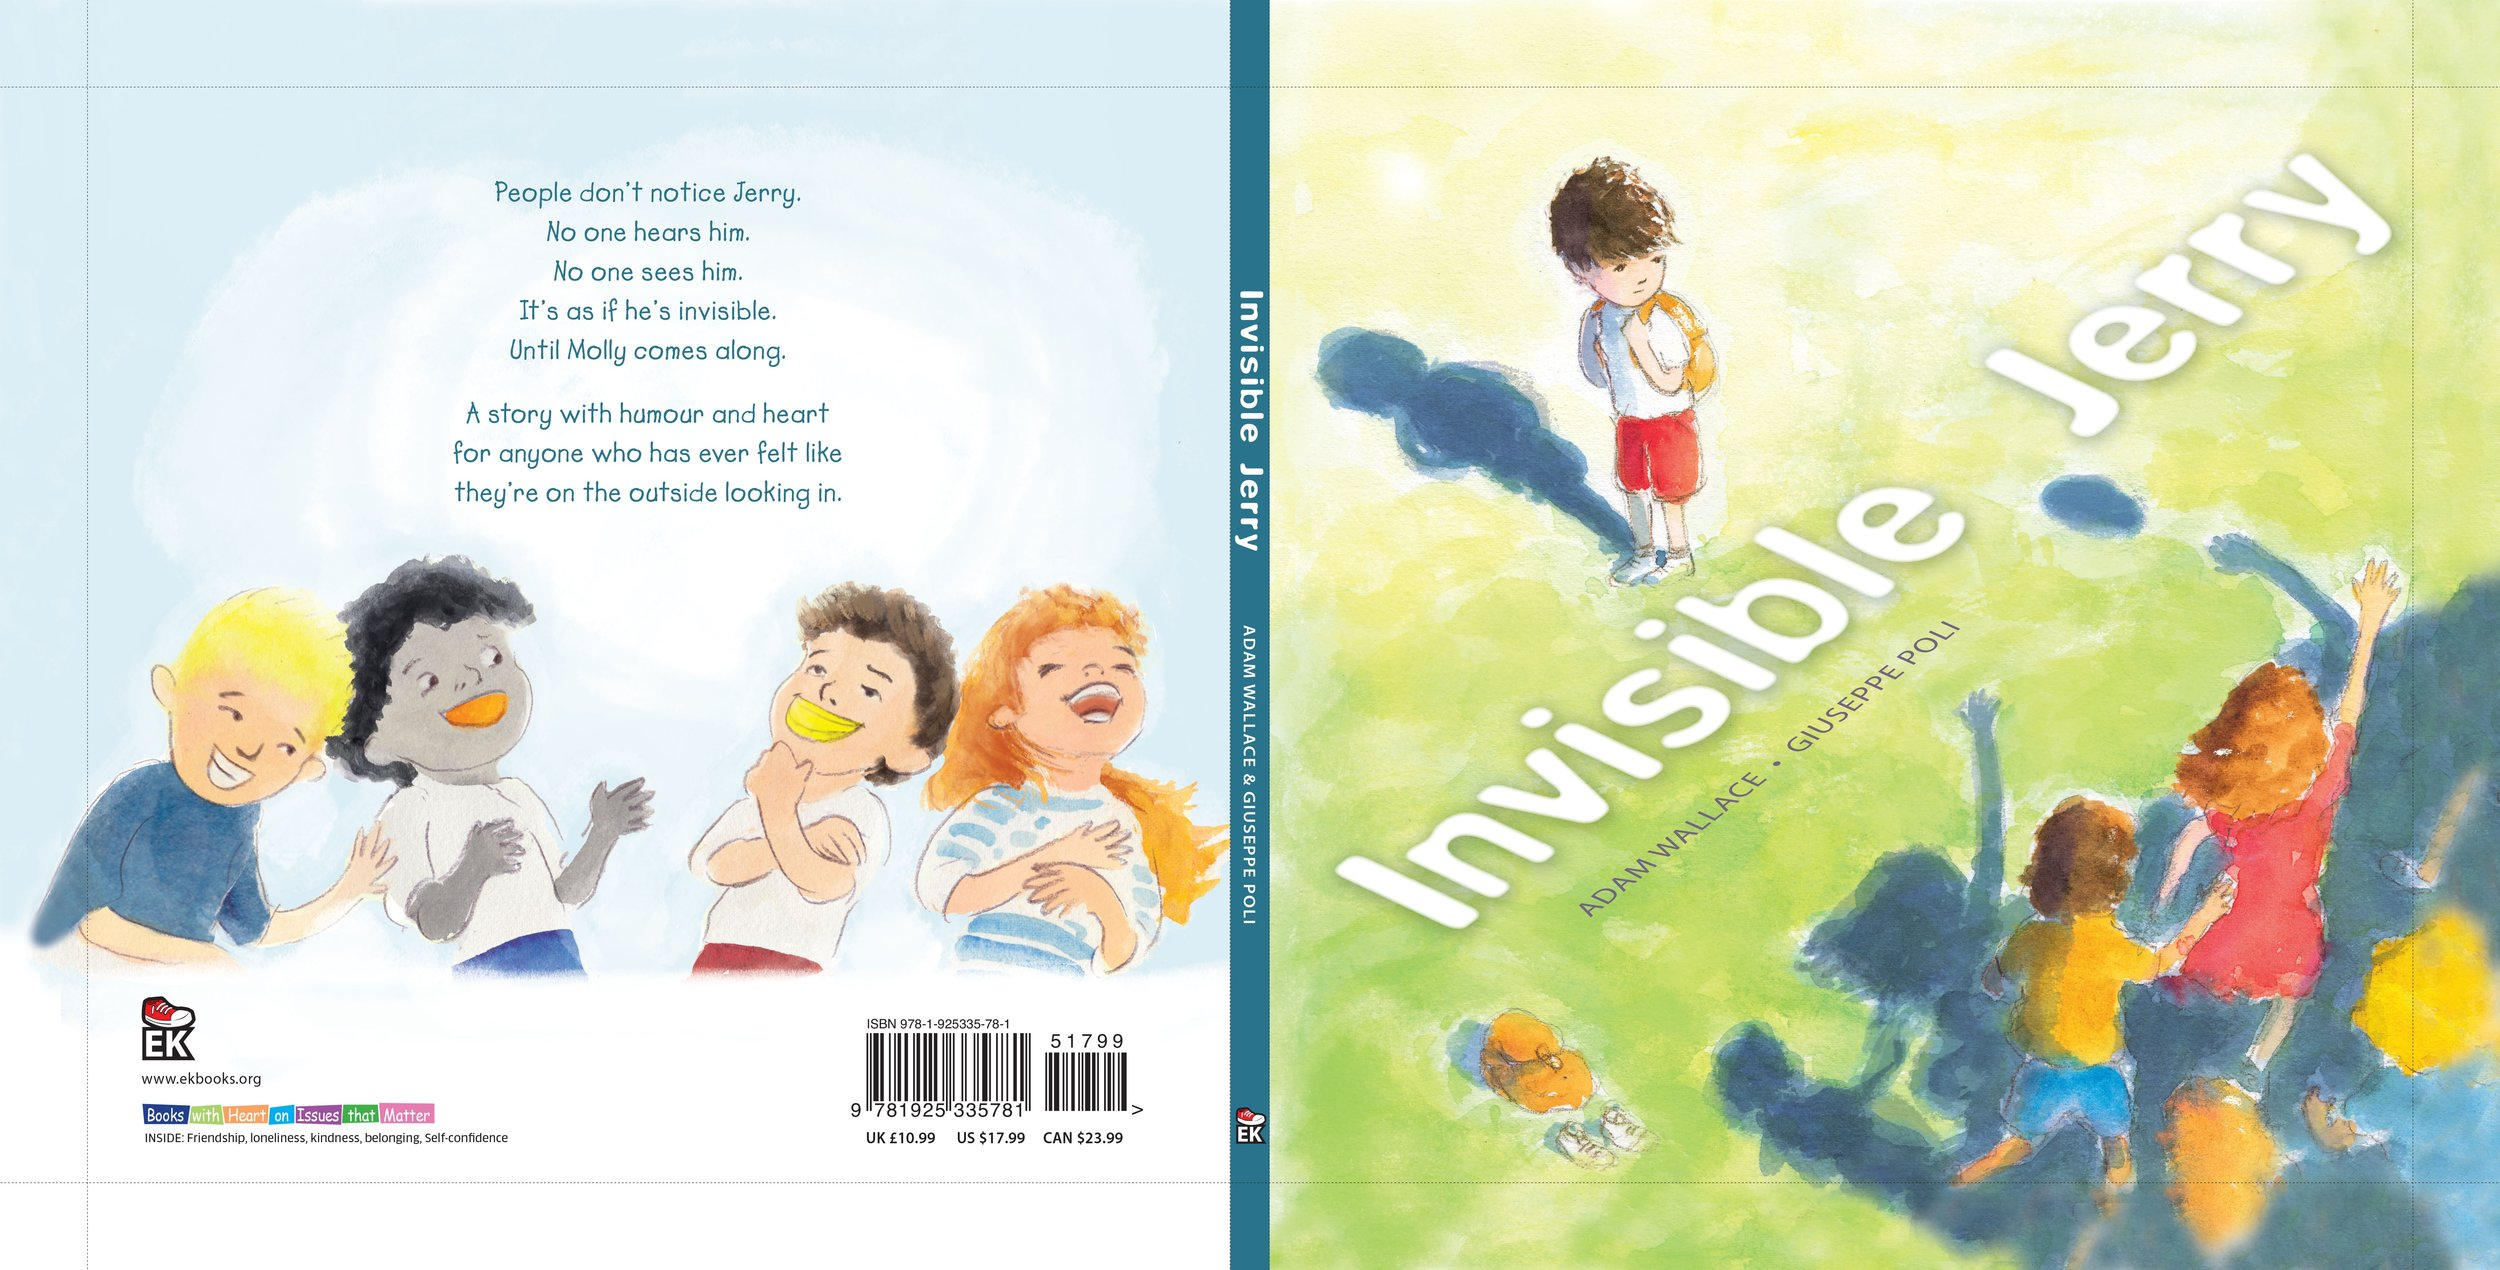 InvisibleJerry front and back covers.jpg